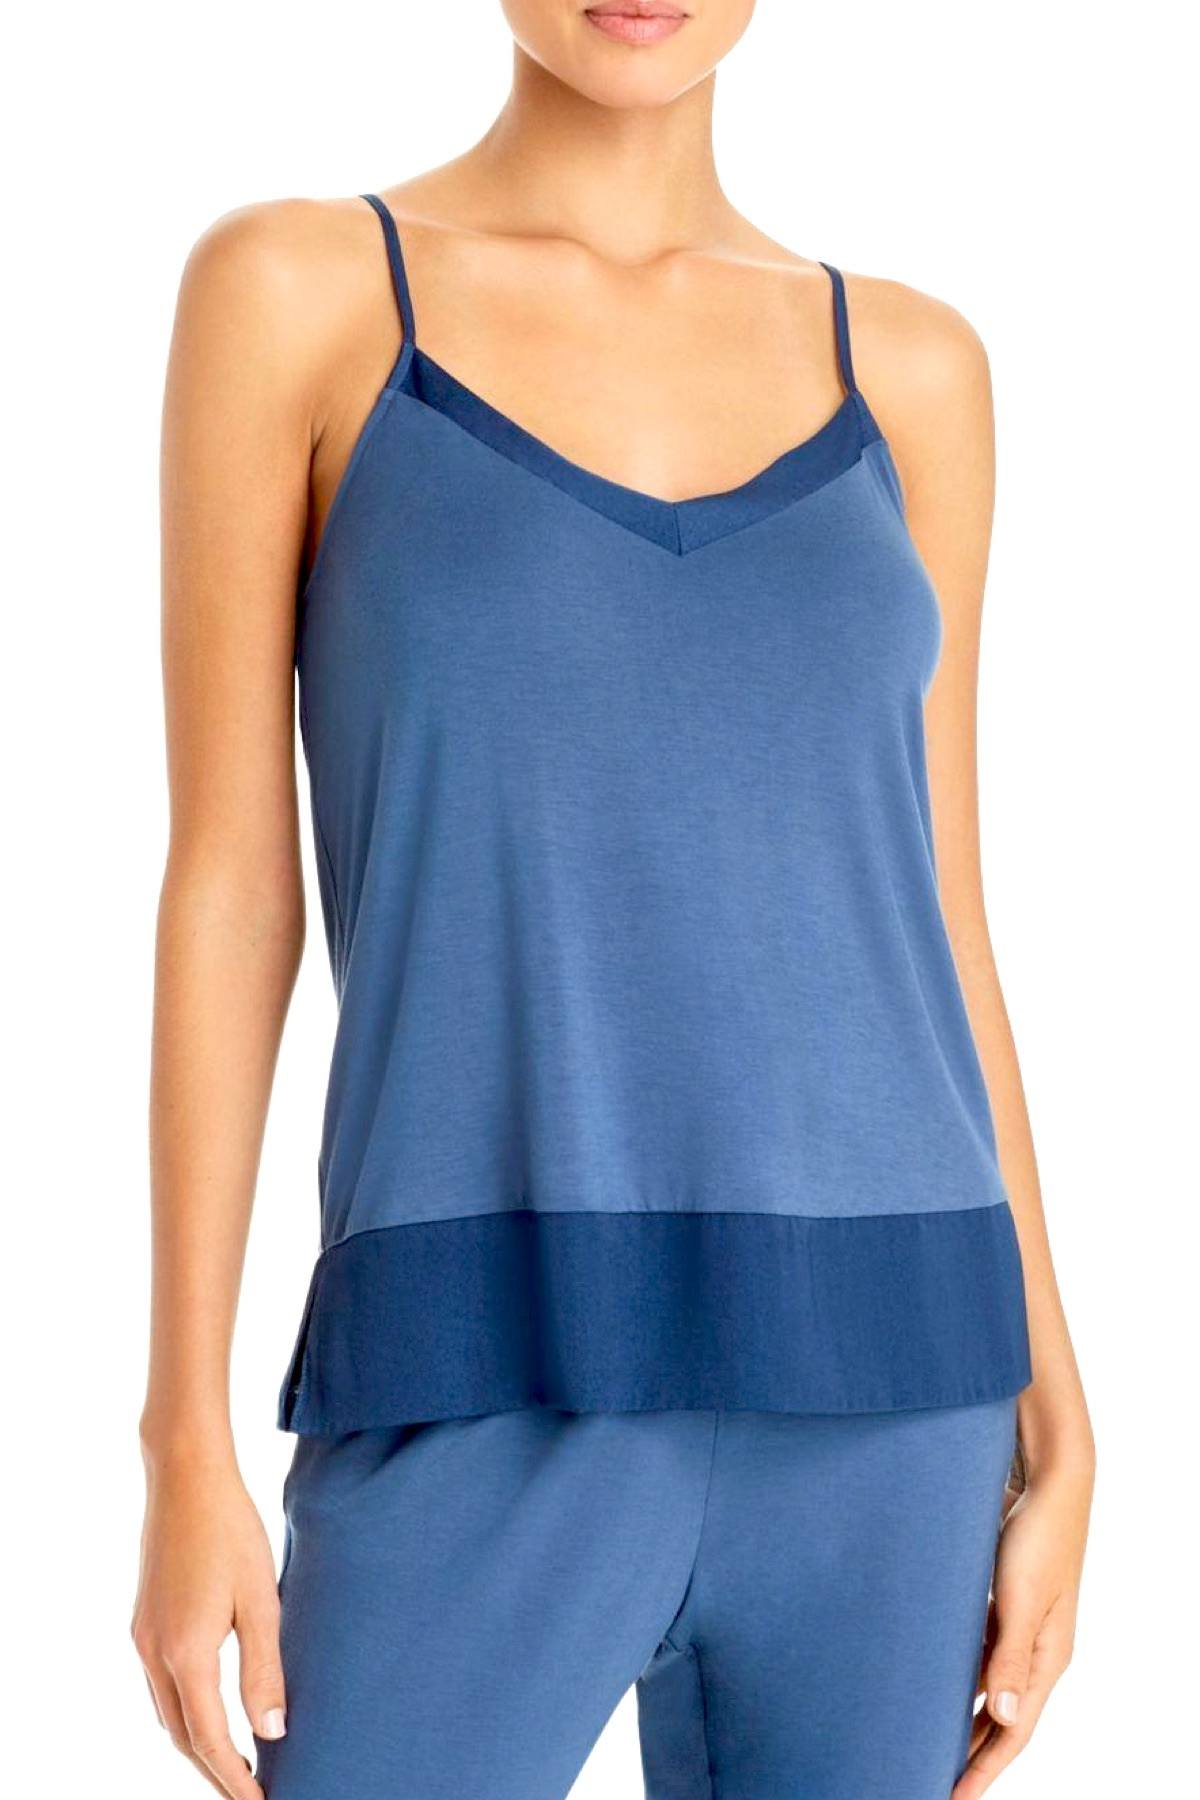 Josie by Natori Sweet Street Satin Trim Camisole in Batik Blue